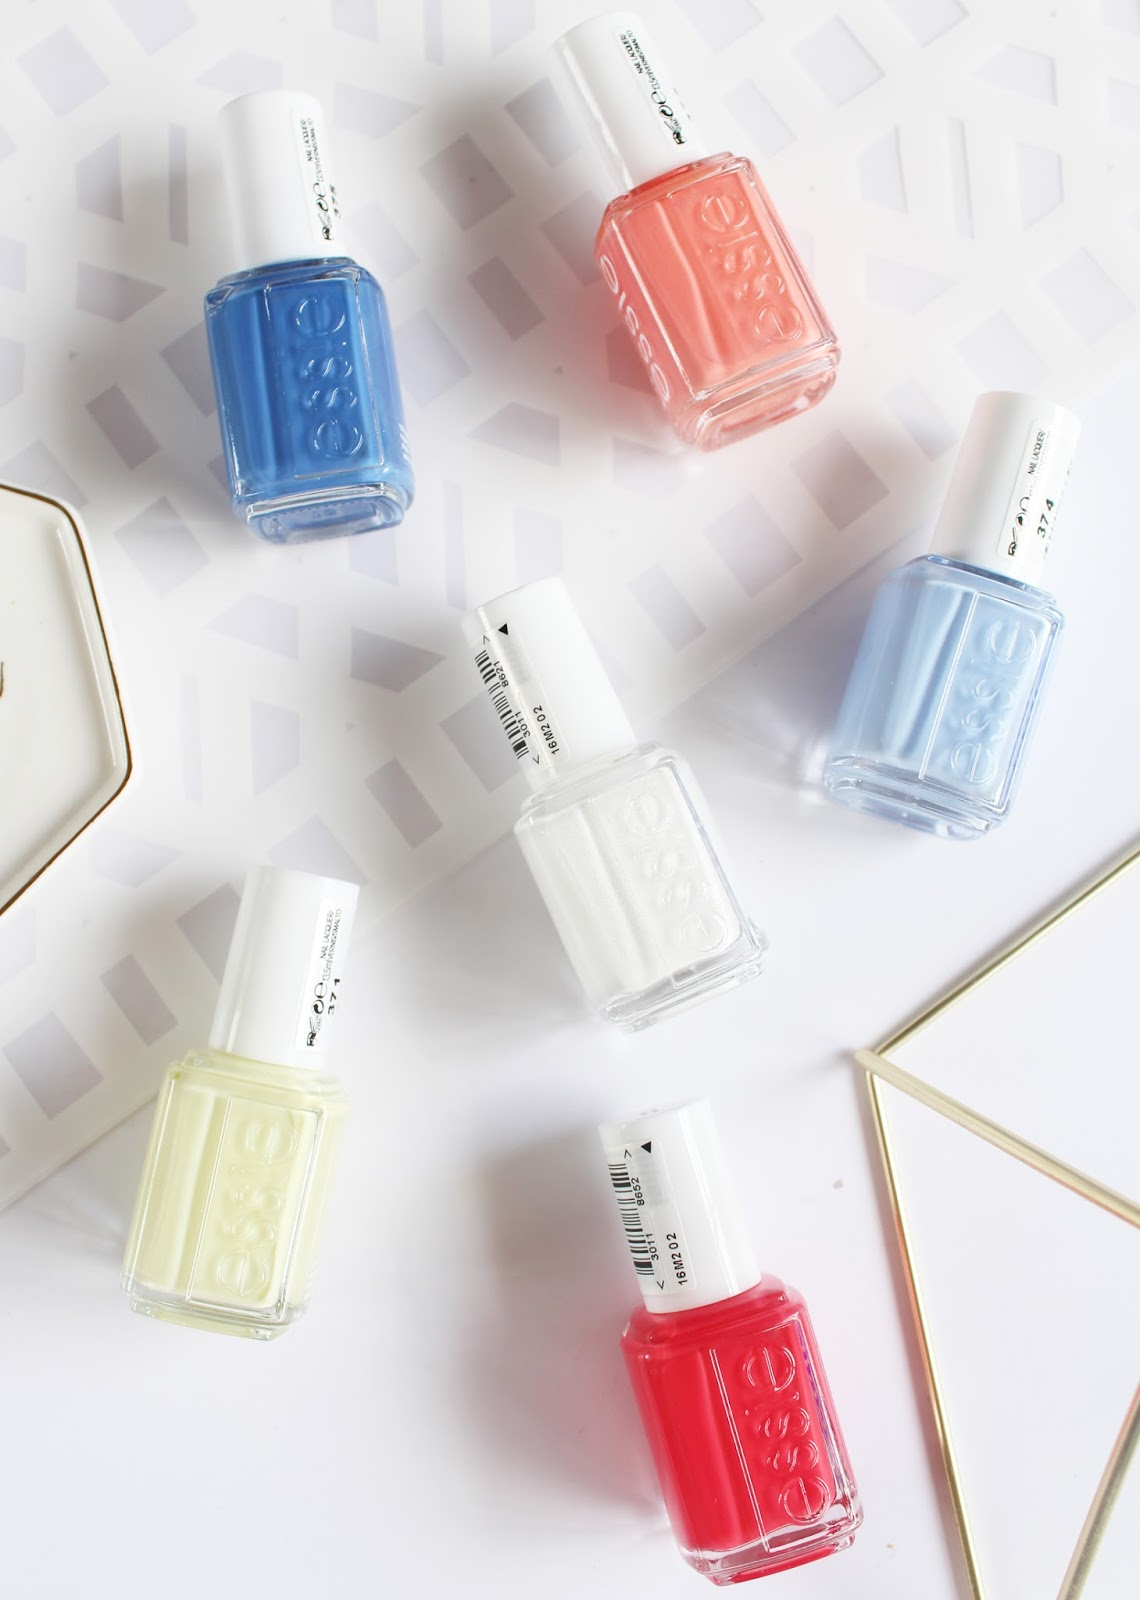 ESSIE | 2015 Summer Nail Polish Collection - Review + Swatches - CassandraMyee